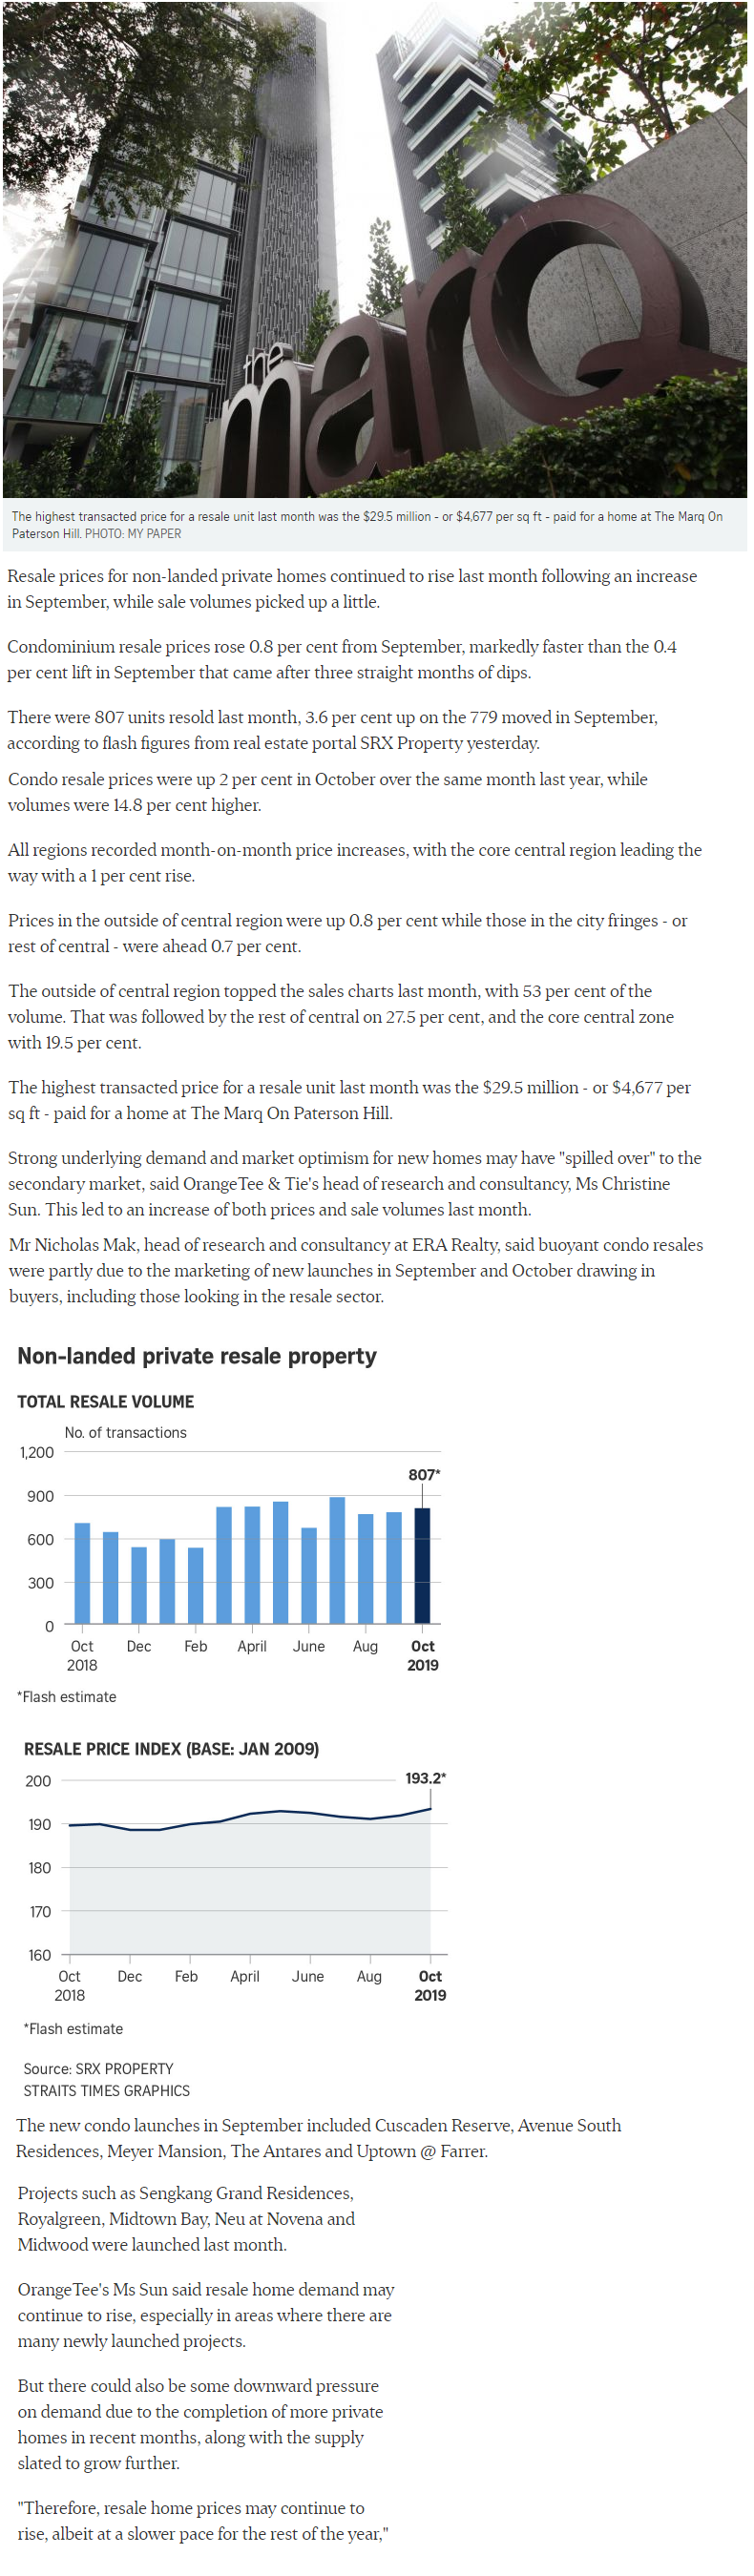 Canninghill Piers - Singapore Condo Resale Prices Up 0.8% Last Month